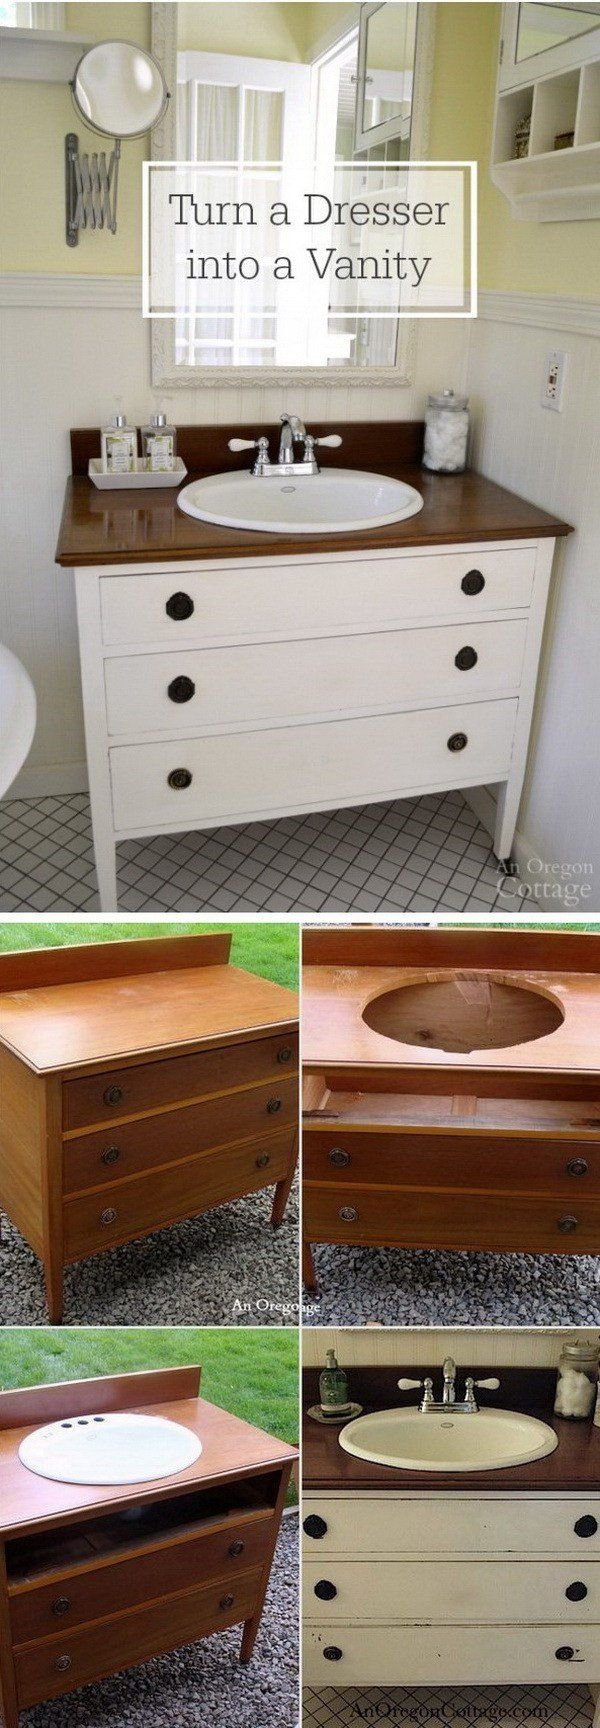 Bathroom vanities on a budget - 40 High Style Low Budget Furniture Makeovers You Could Definitely Do Diy Bathroom Vanitybathroom